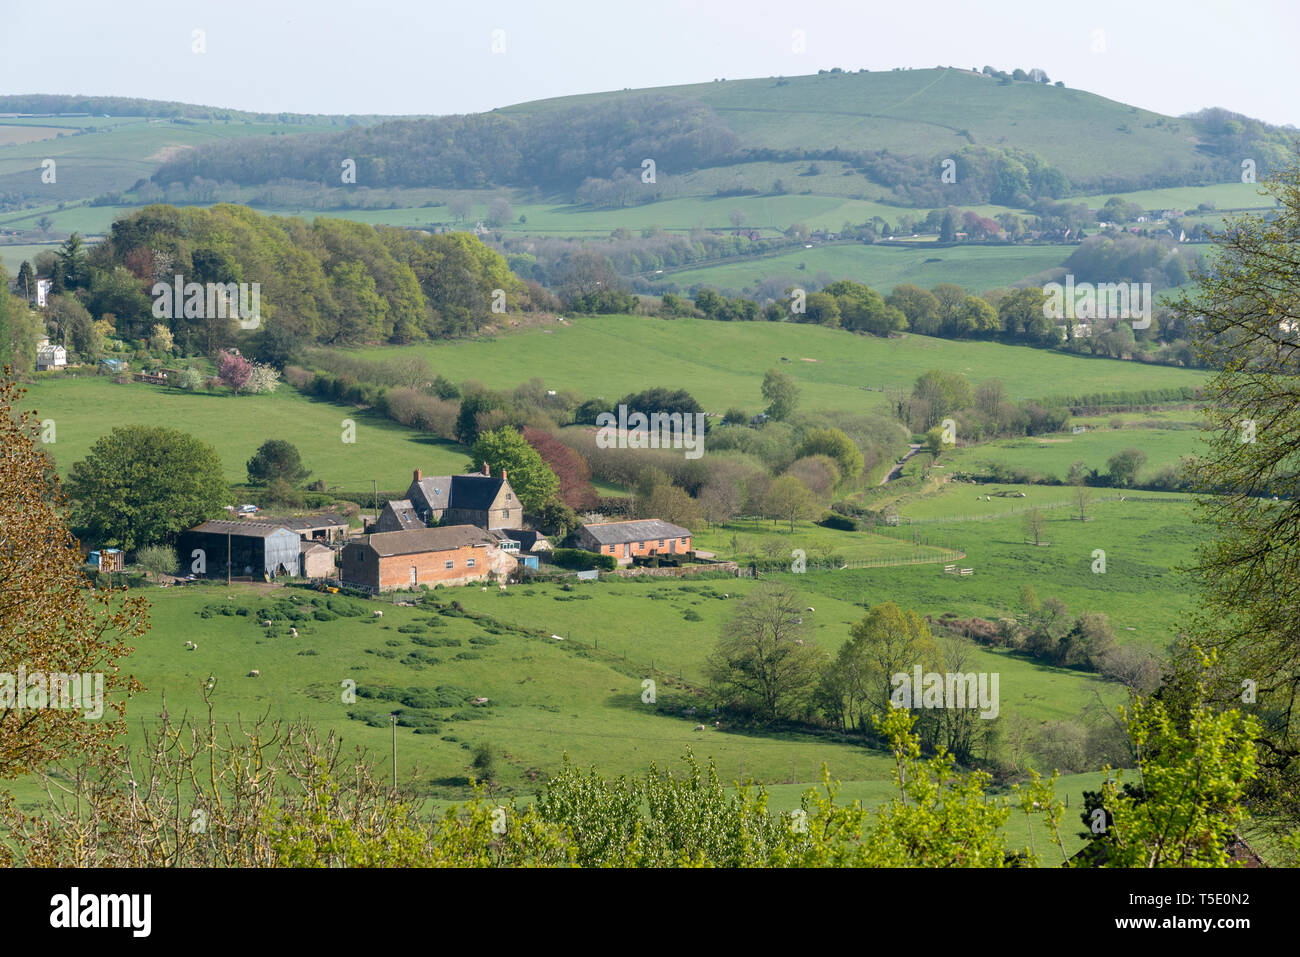 Shaftesbury, Dorset, England, UK. April 2019. A rural view across Blackmore Vale open Dorset countryside from Shaftesbury. - Stock Image